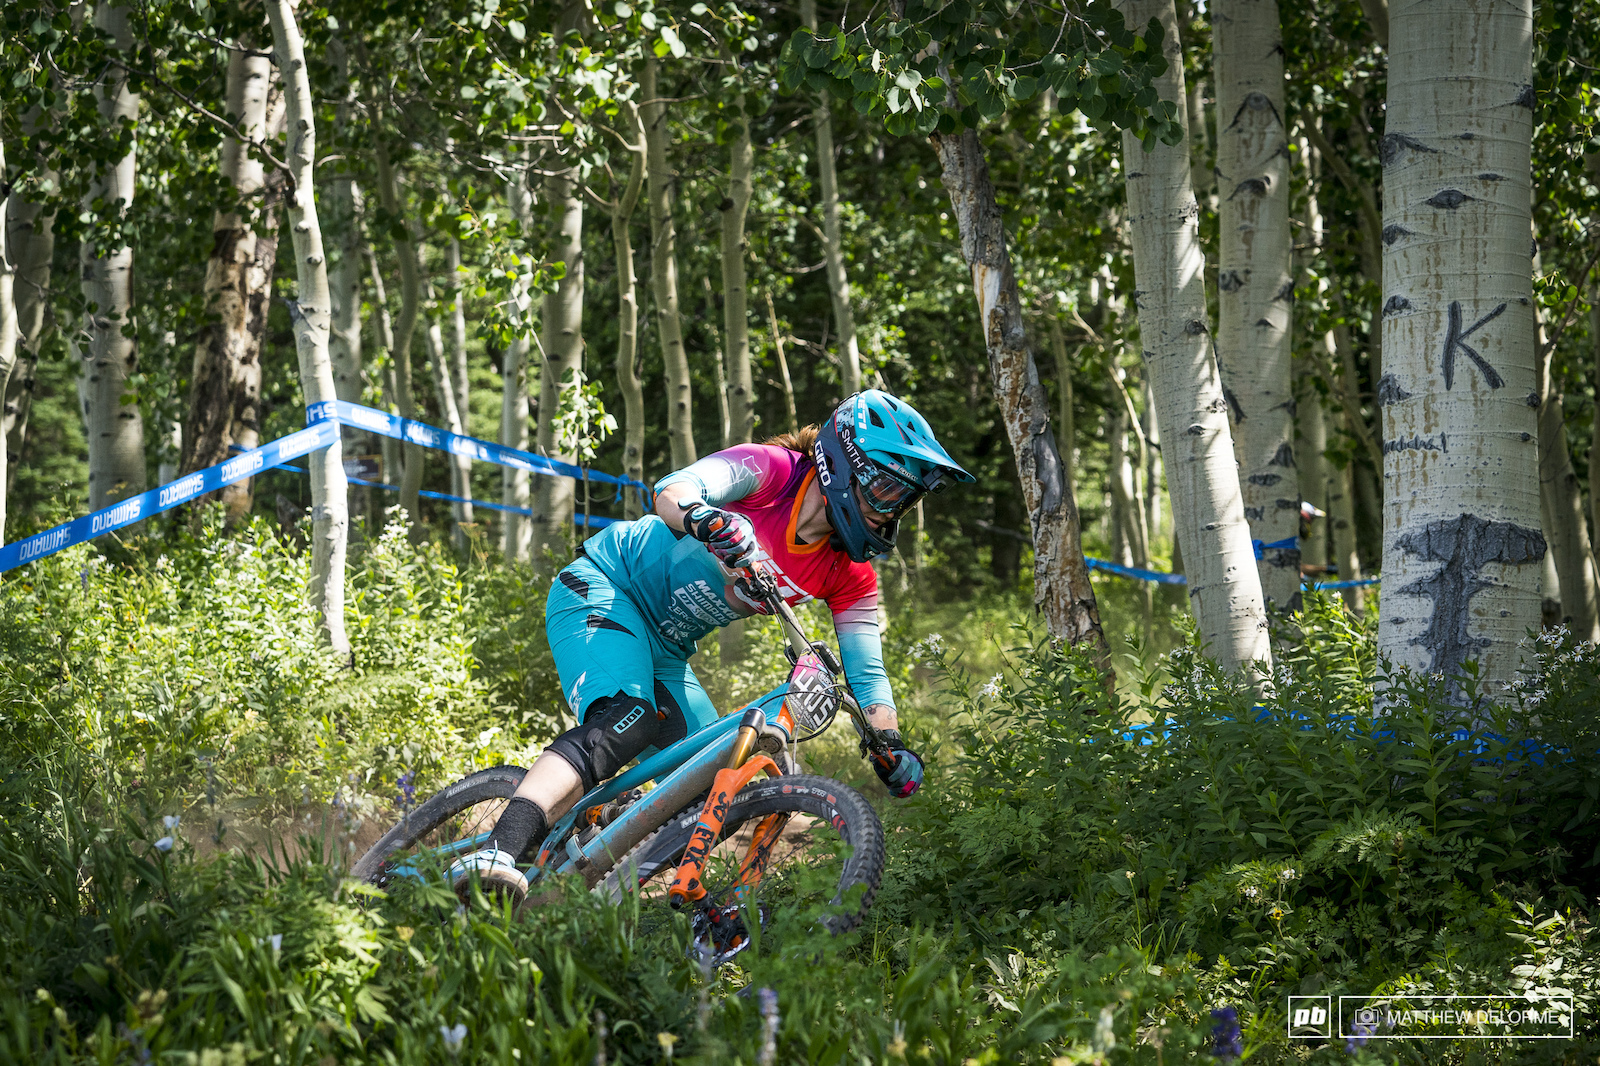 American Anne Galyean is looking for a strong result in her first EWS this season with the Yeti National team.